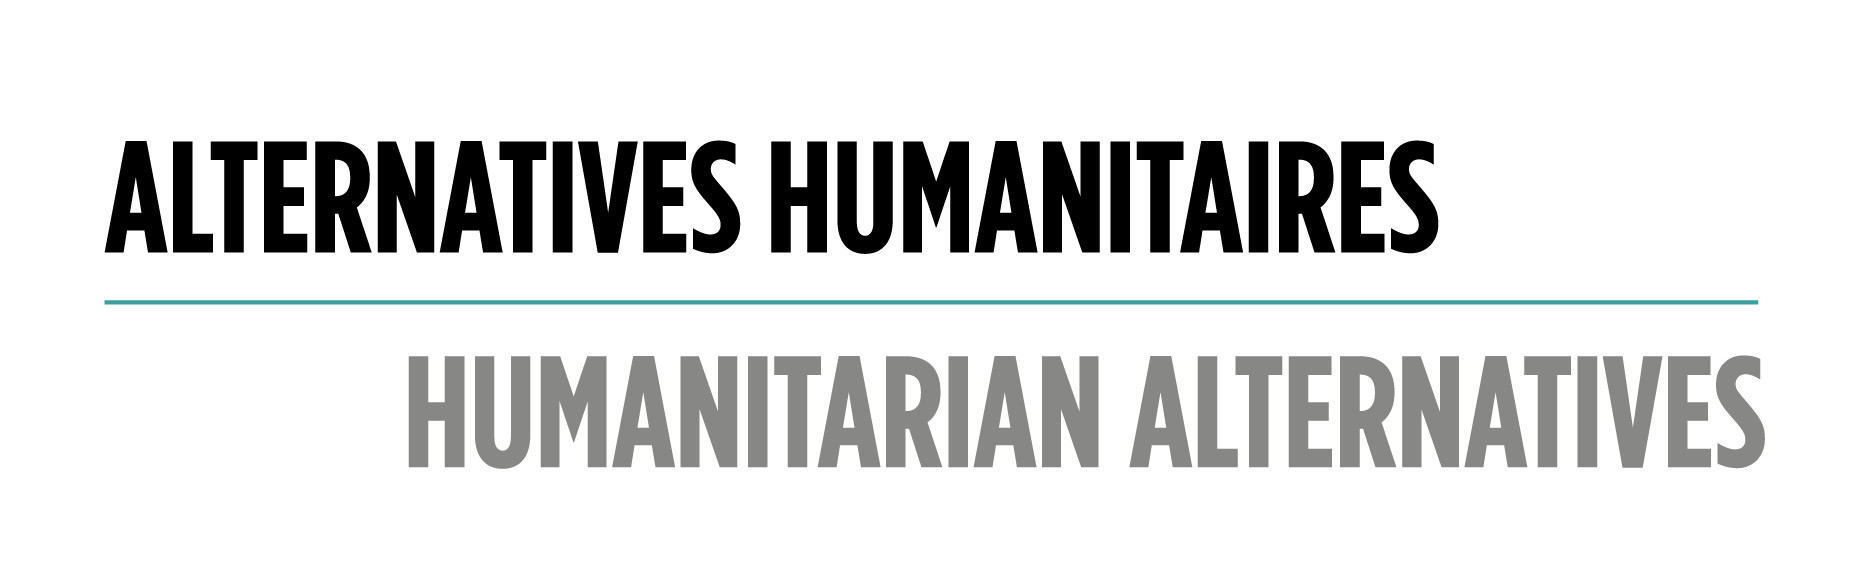 Humanitarian Alternatives logo